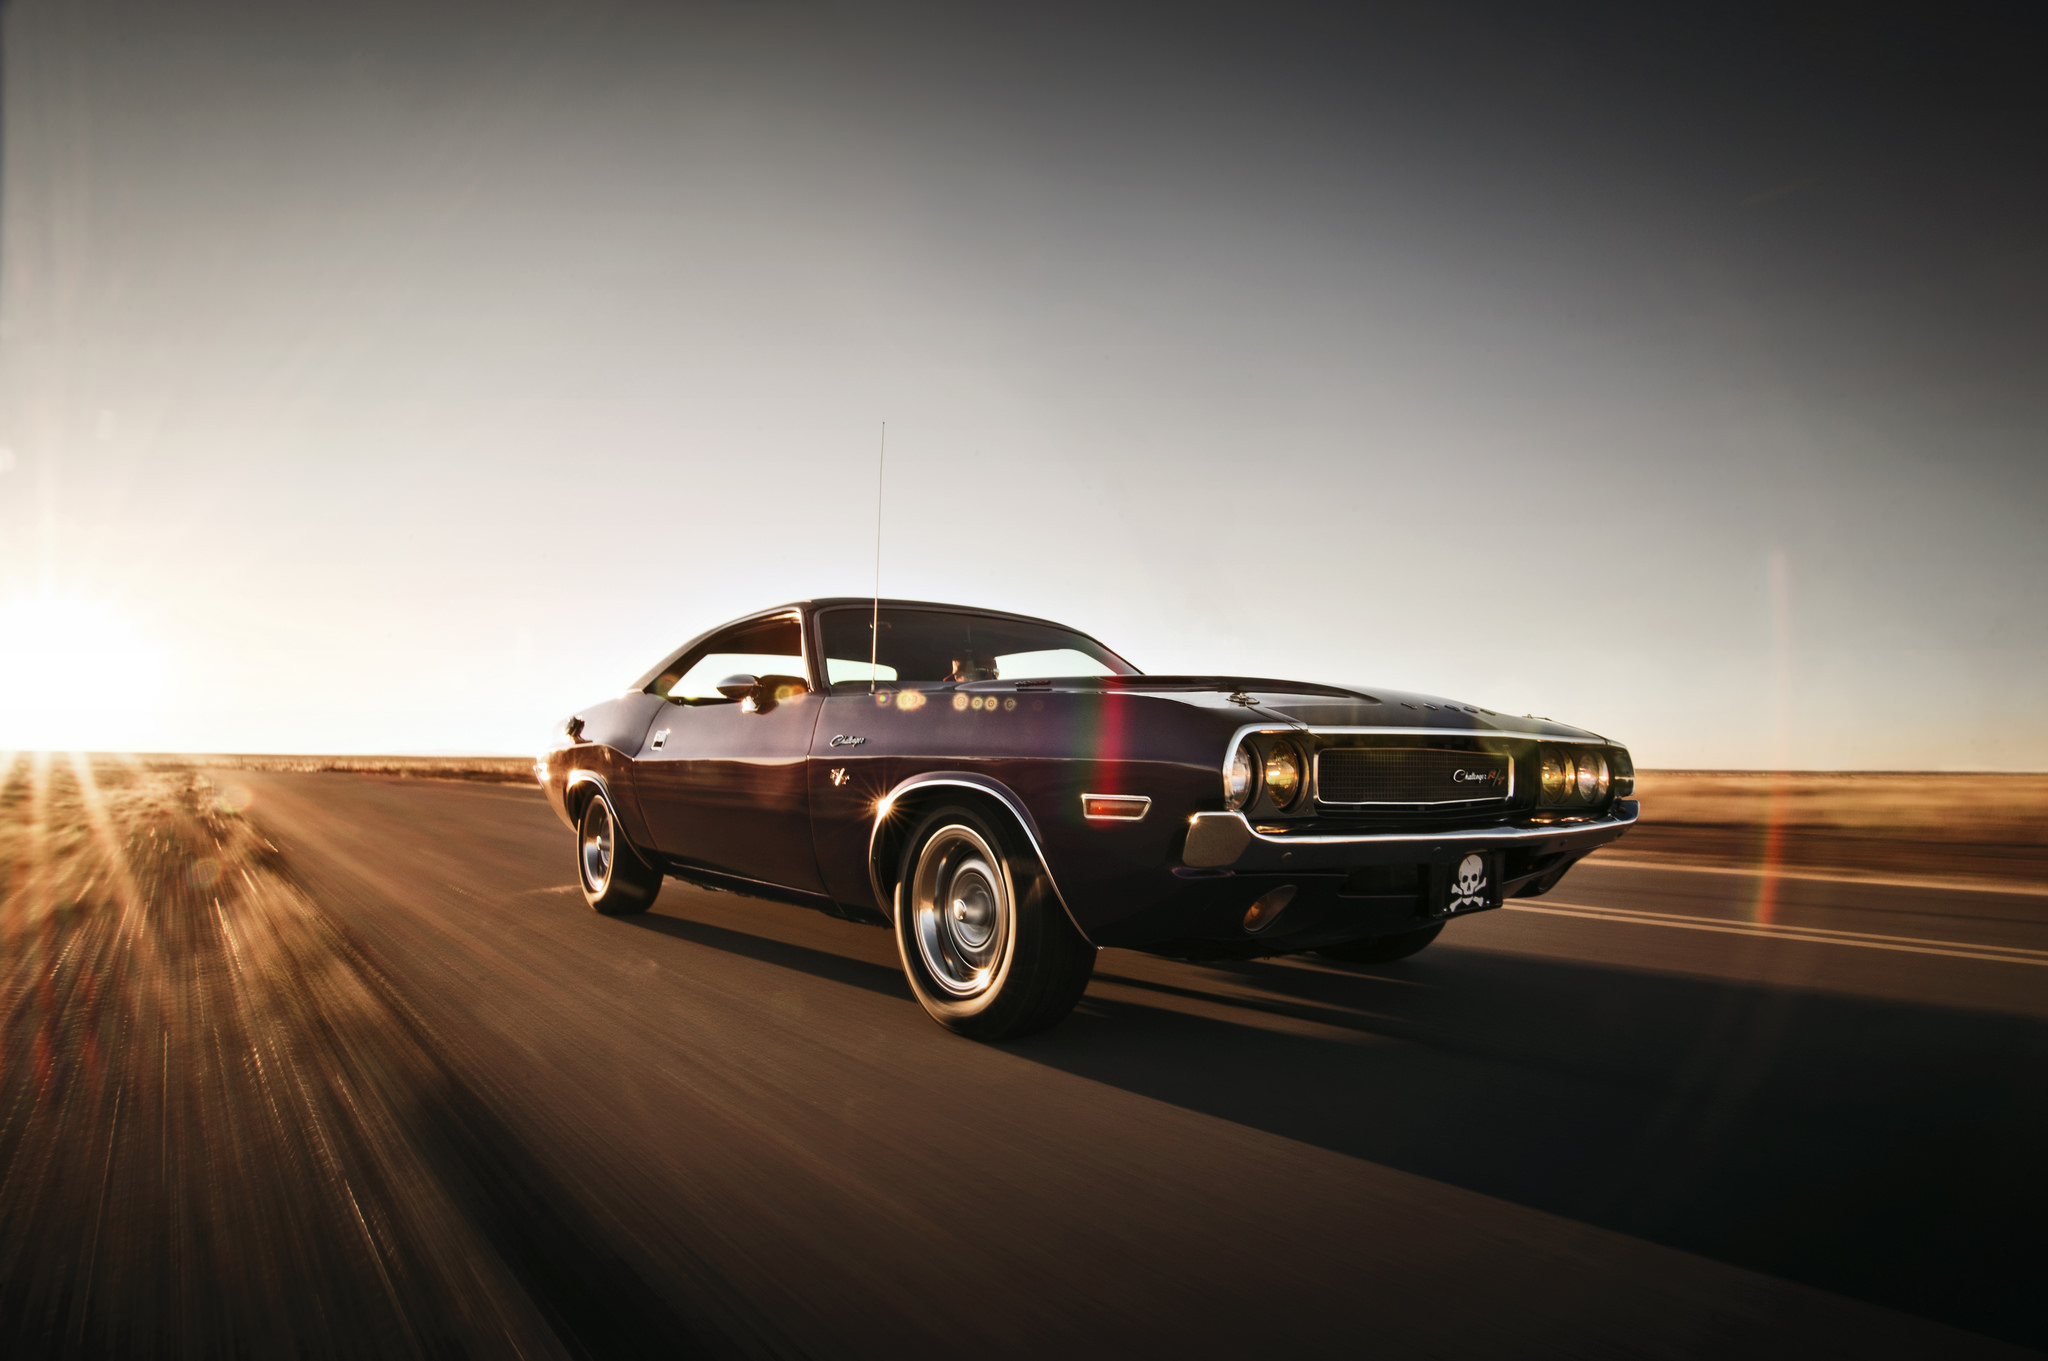 78898 download wallpaper Cars, Traffic, Movement, Speed, Dodge, Challenger screensavers and pictures for free